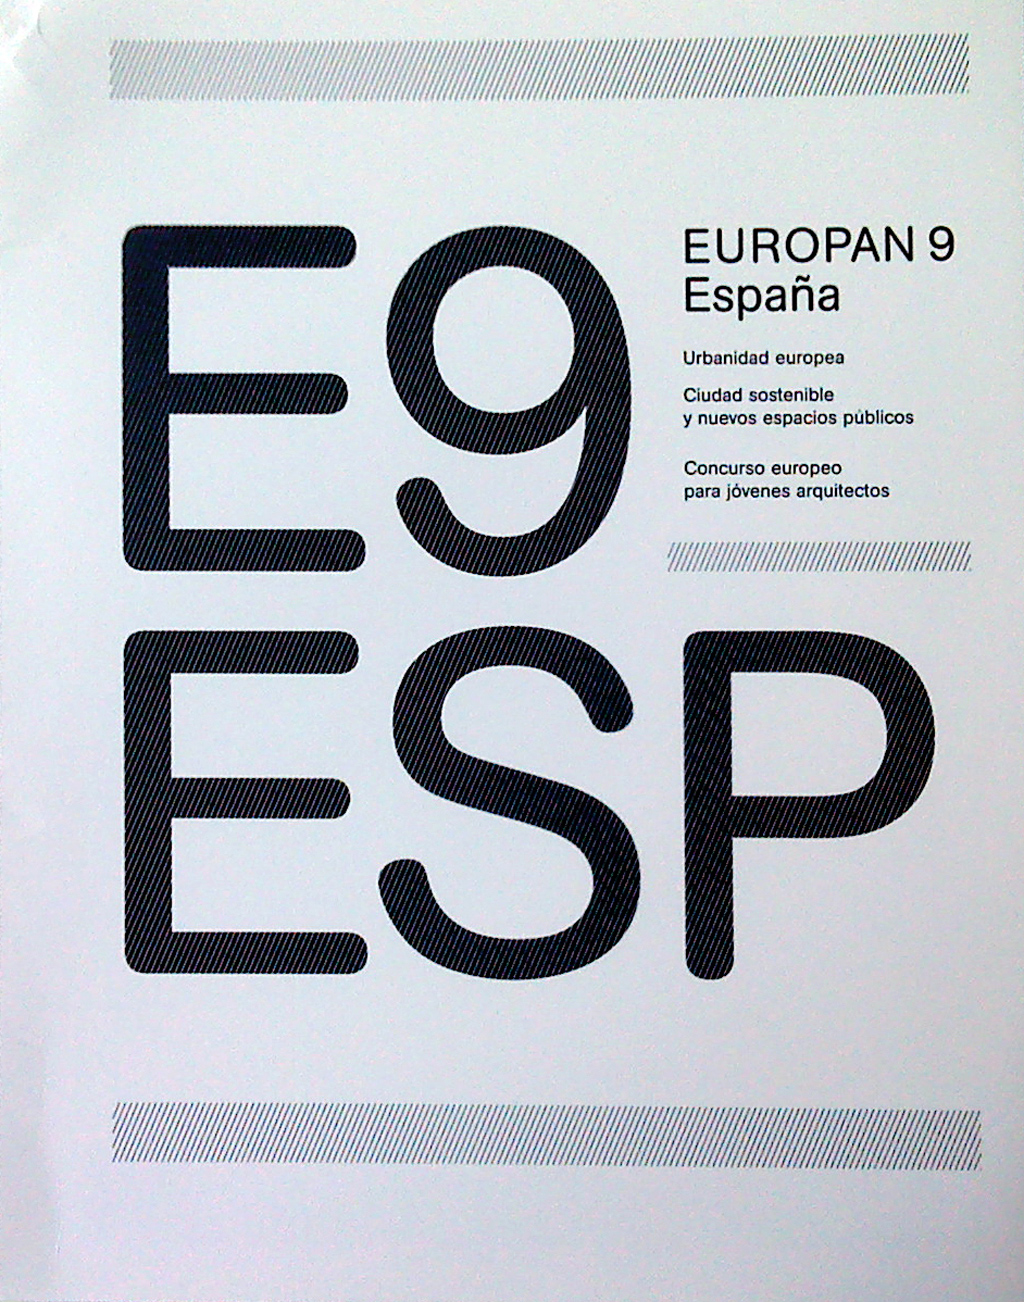 Europan 9 Spain Publication: European Urbanity